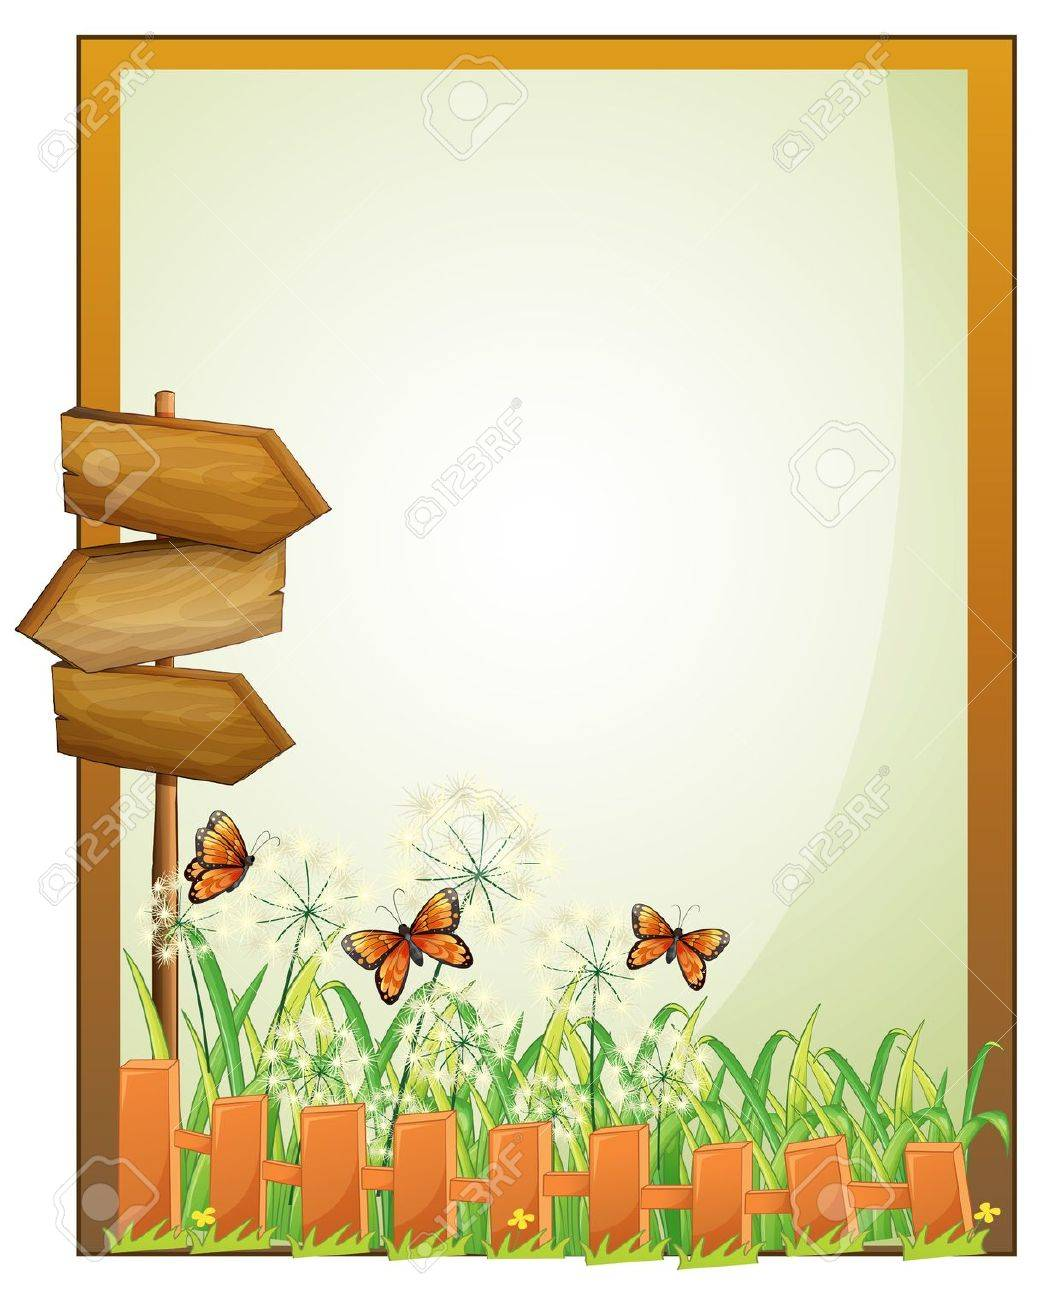 Illustration of a framed empty signage with wooden arrowboards on a white background Stock Vector - 18390357